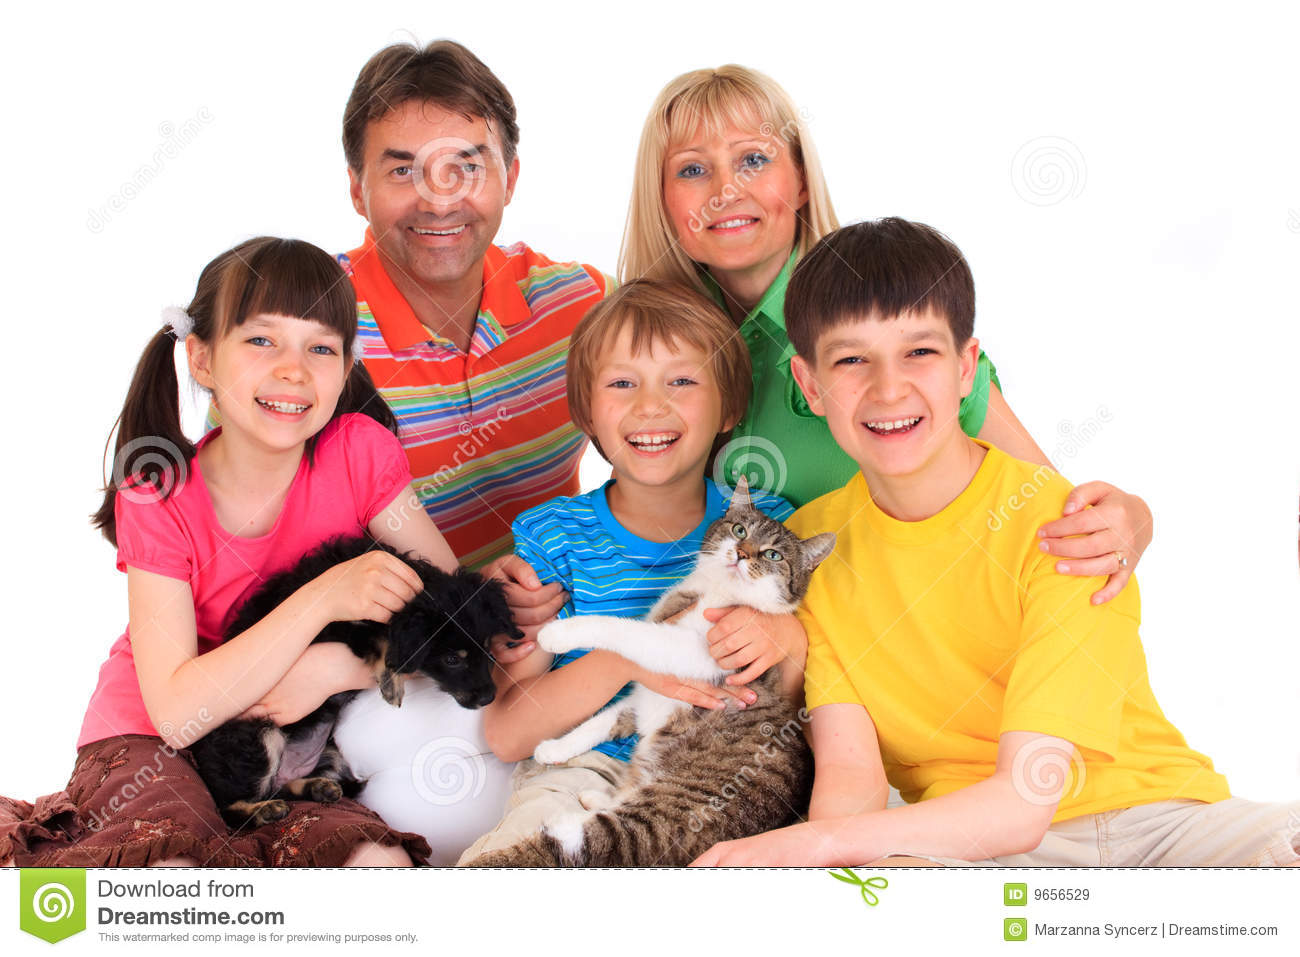 ... view of a smiling family posing with their pets on a white background